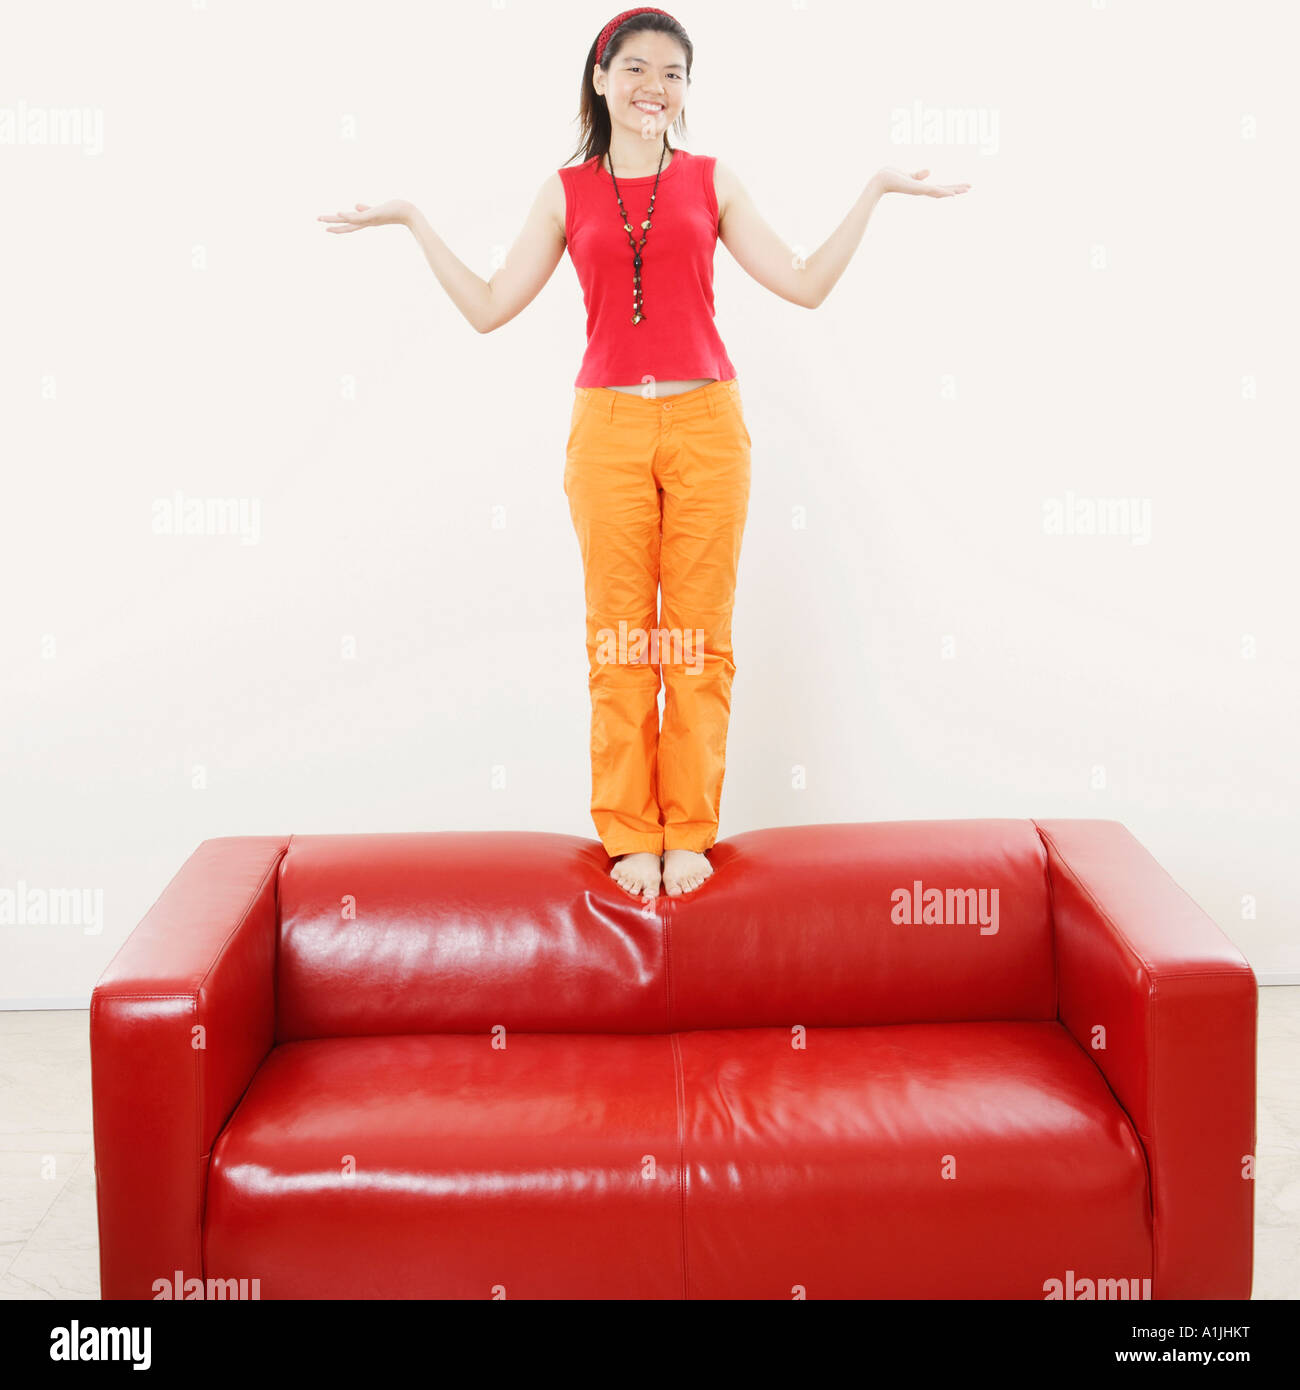 Portrait of a young woman standing on a couch and gesturing Stock Photo